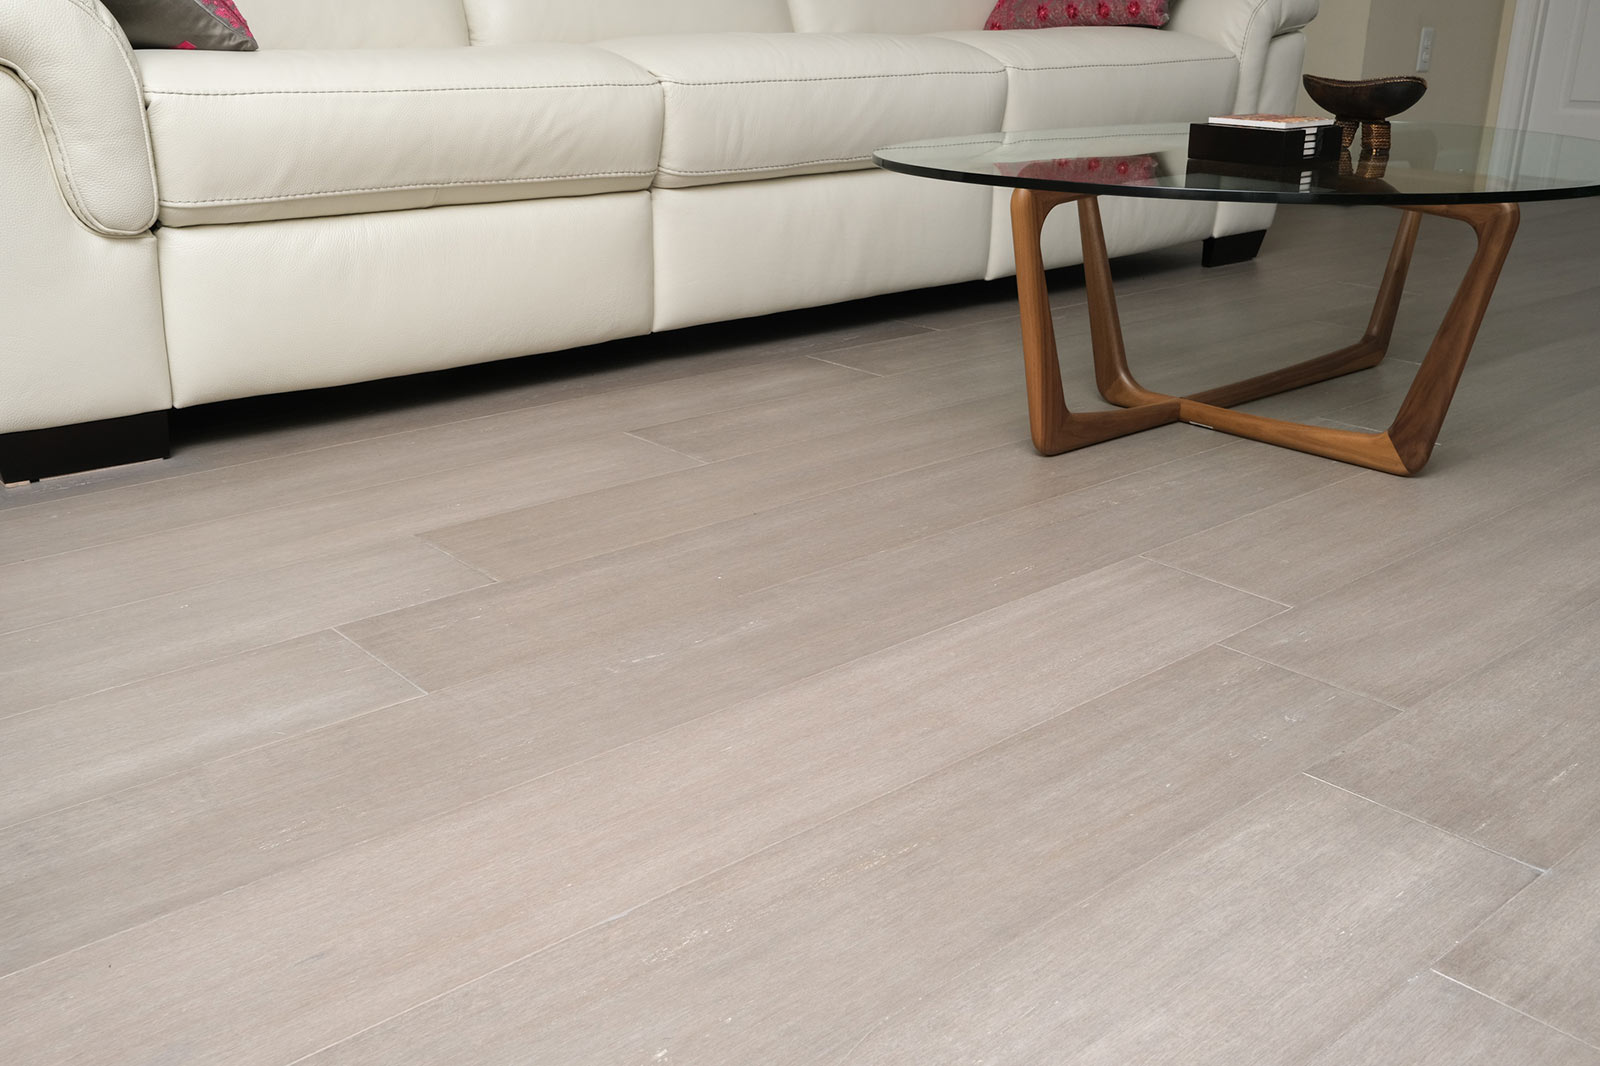 Rustic Mist Light Grey Washed Bamboo Flooring8